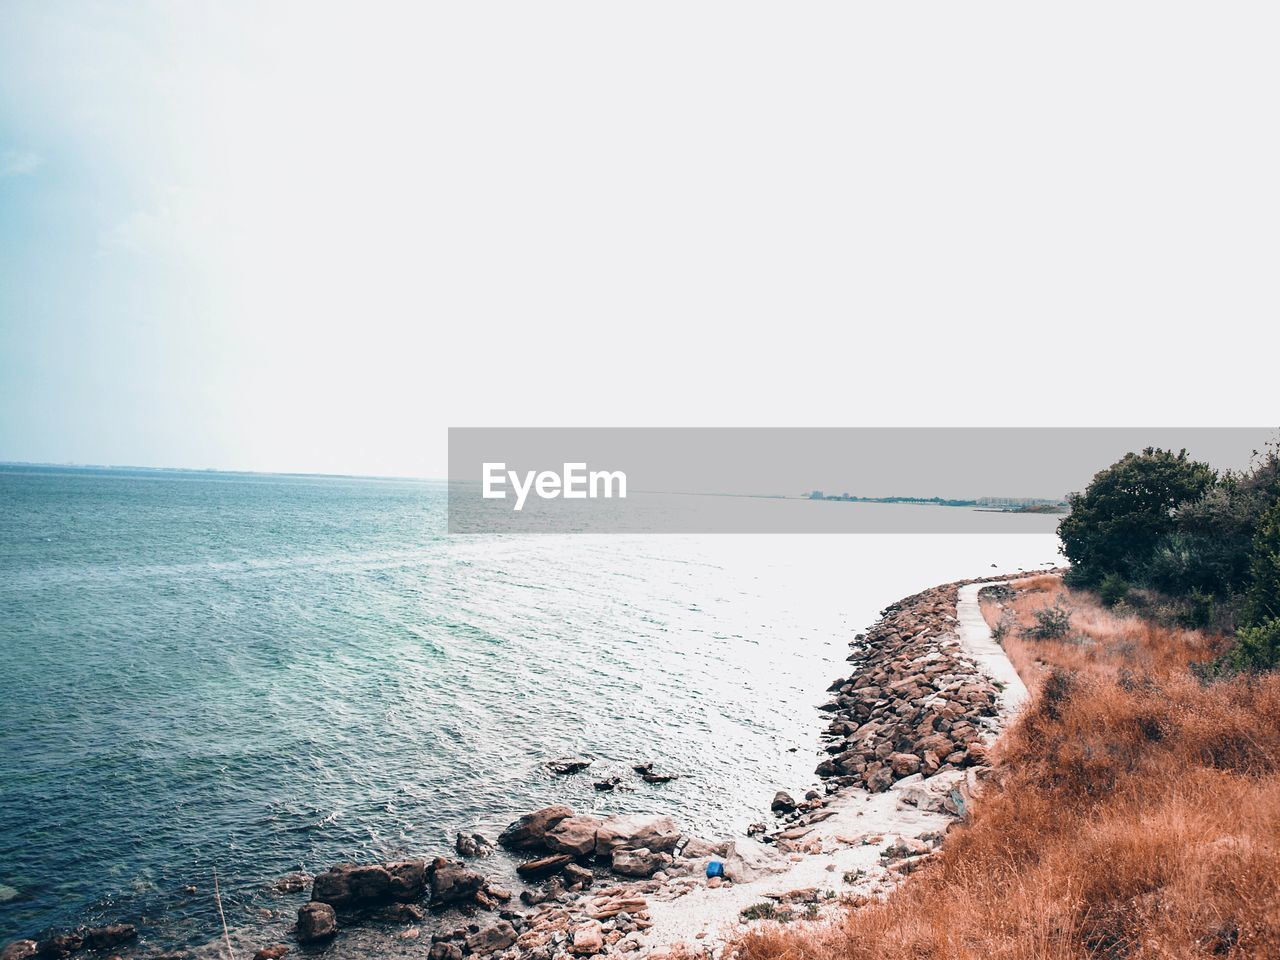 sea, water, sky, horizon, horizon over water, scenics - nature, beauty in nature, clear sky, day, nature, copy space, tranquility, tranquil scene, beach, land, rock, no people, idyllic, outdoors